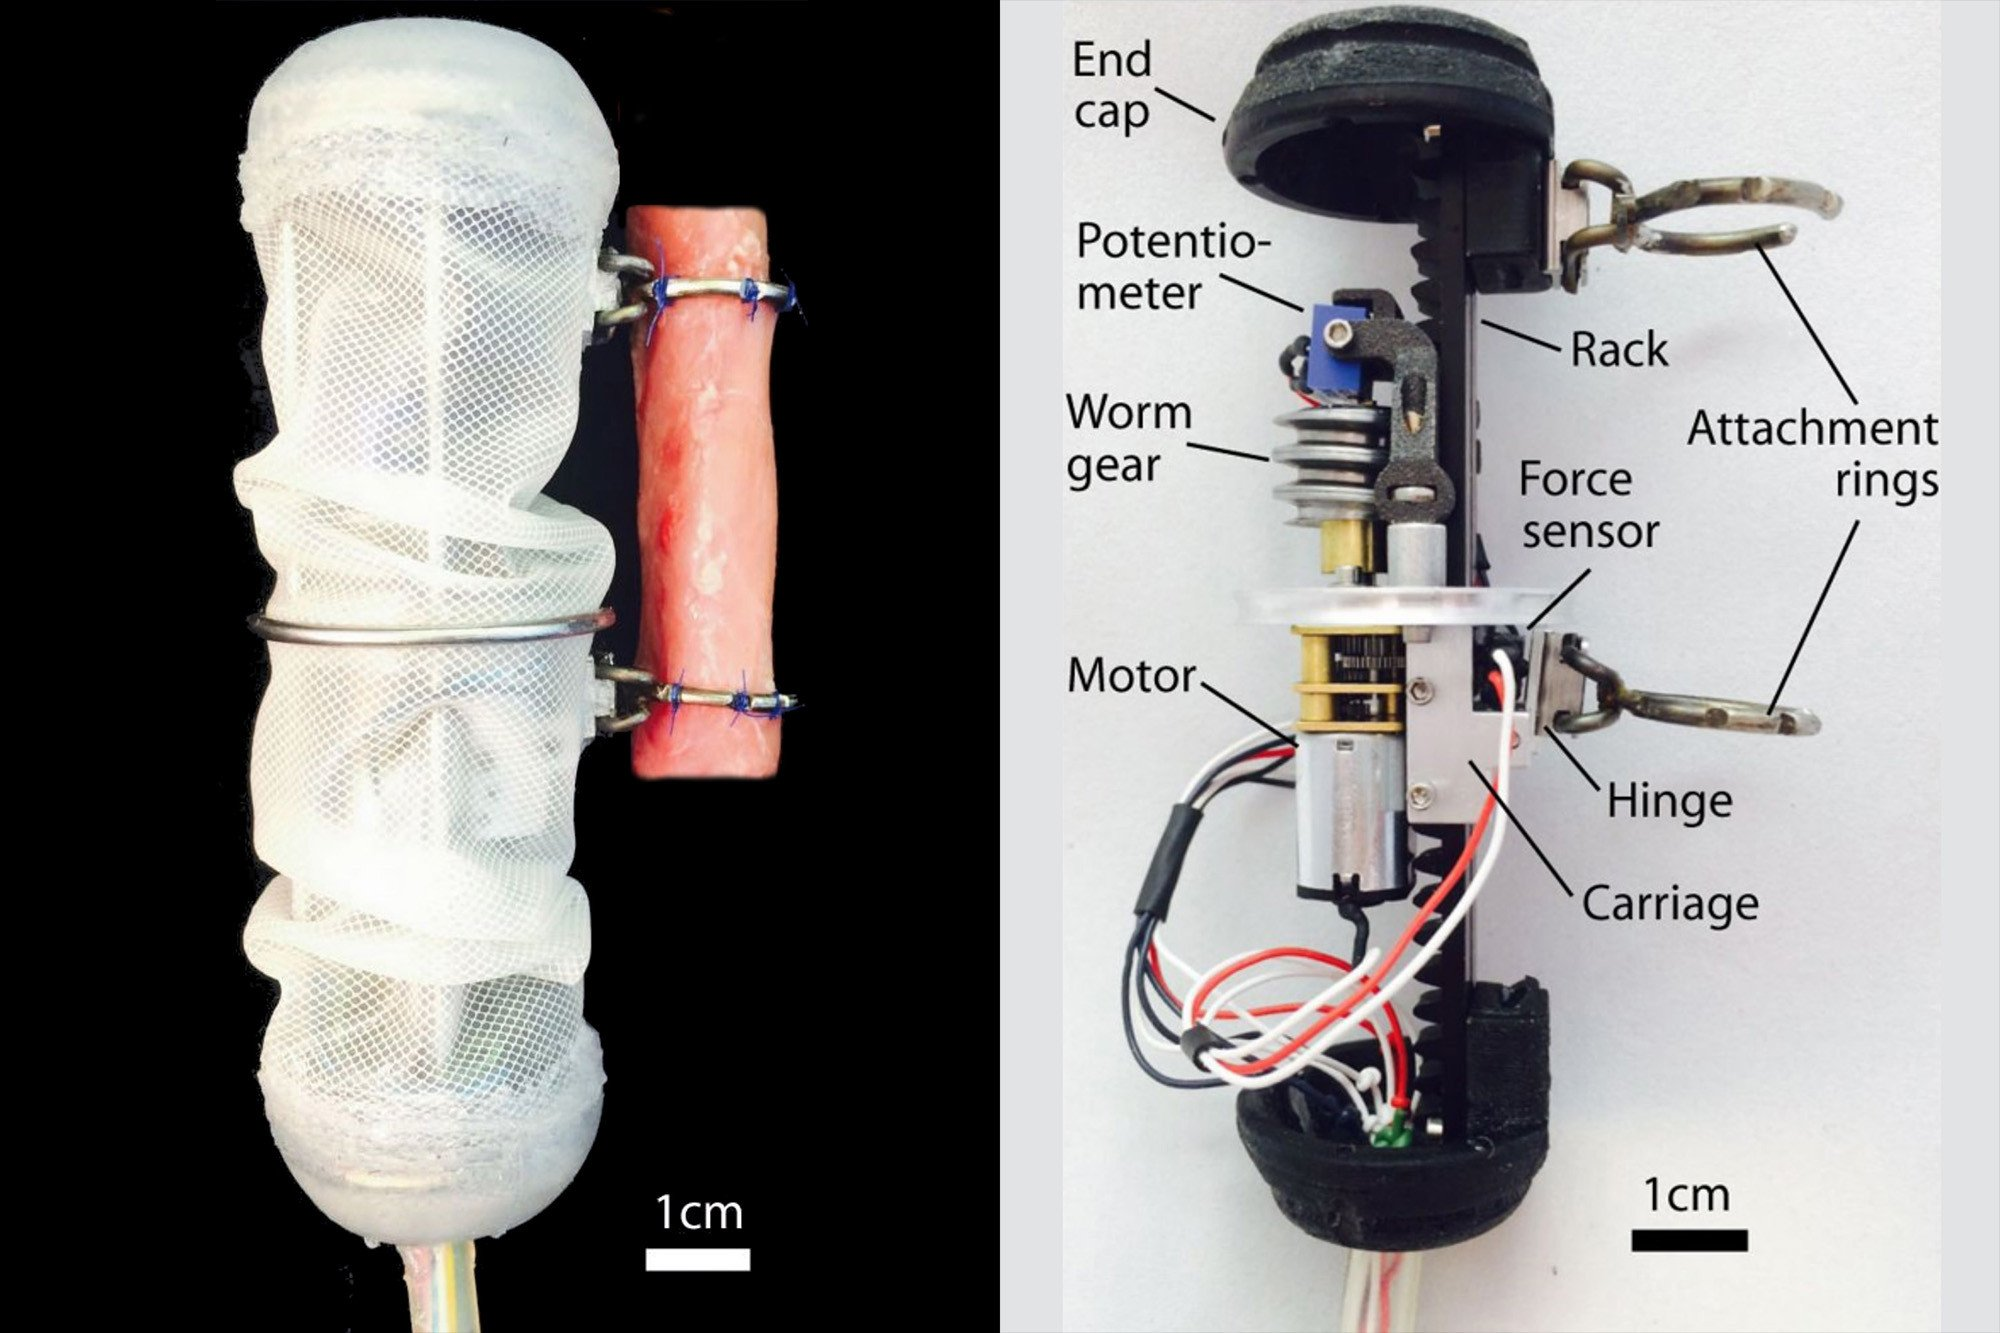 Robotic implant stretches your organs to help them heal